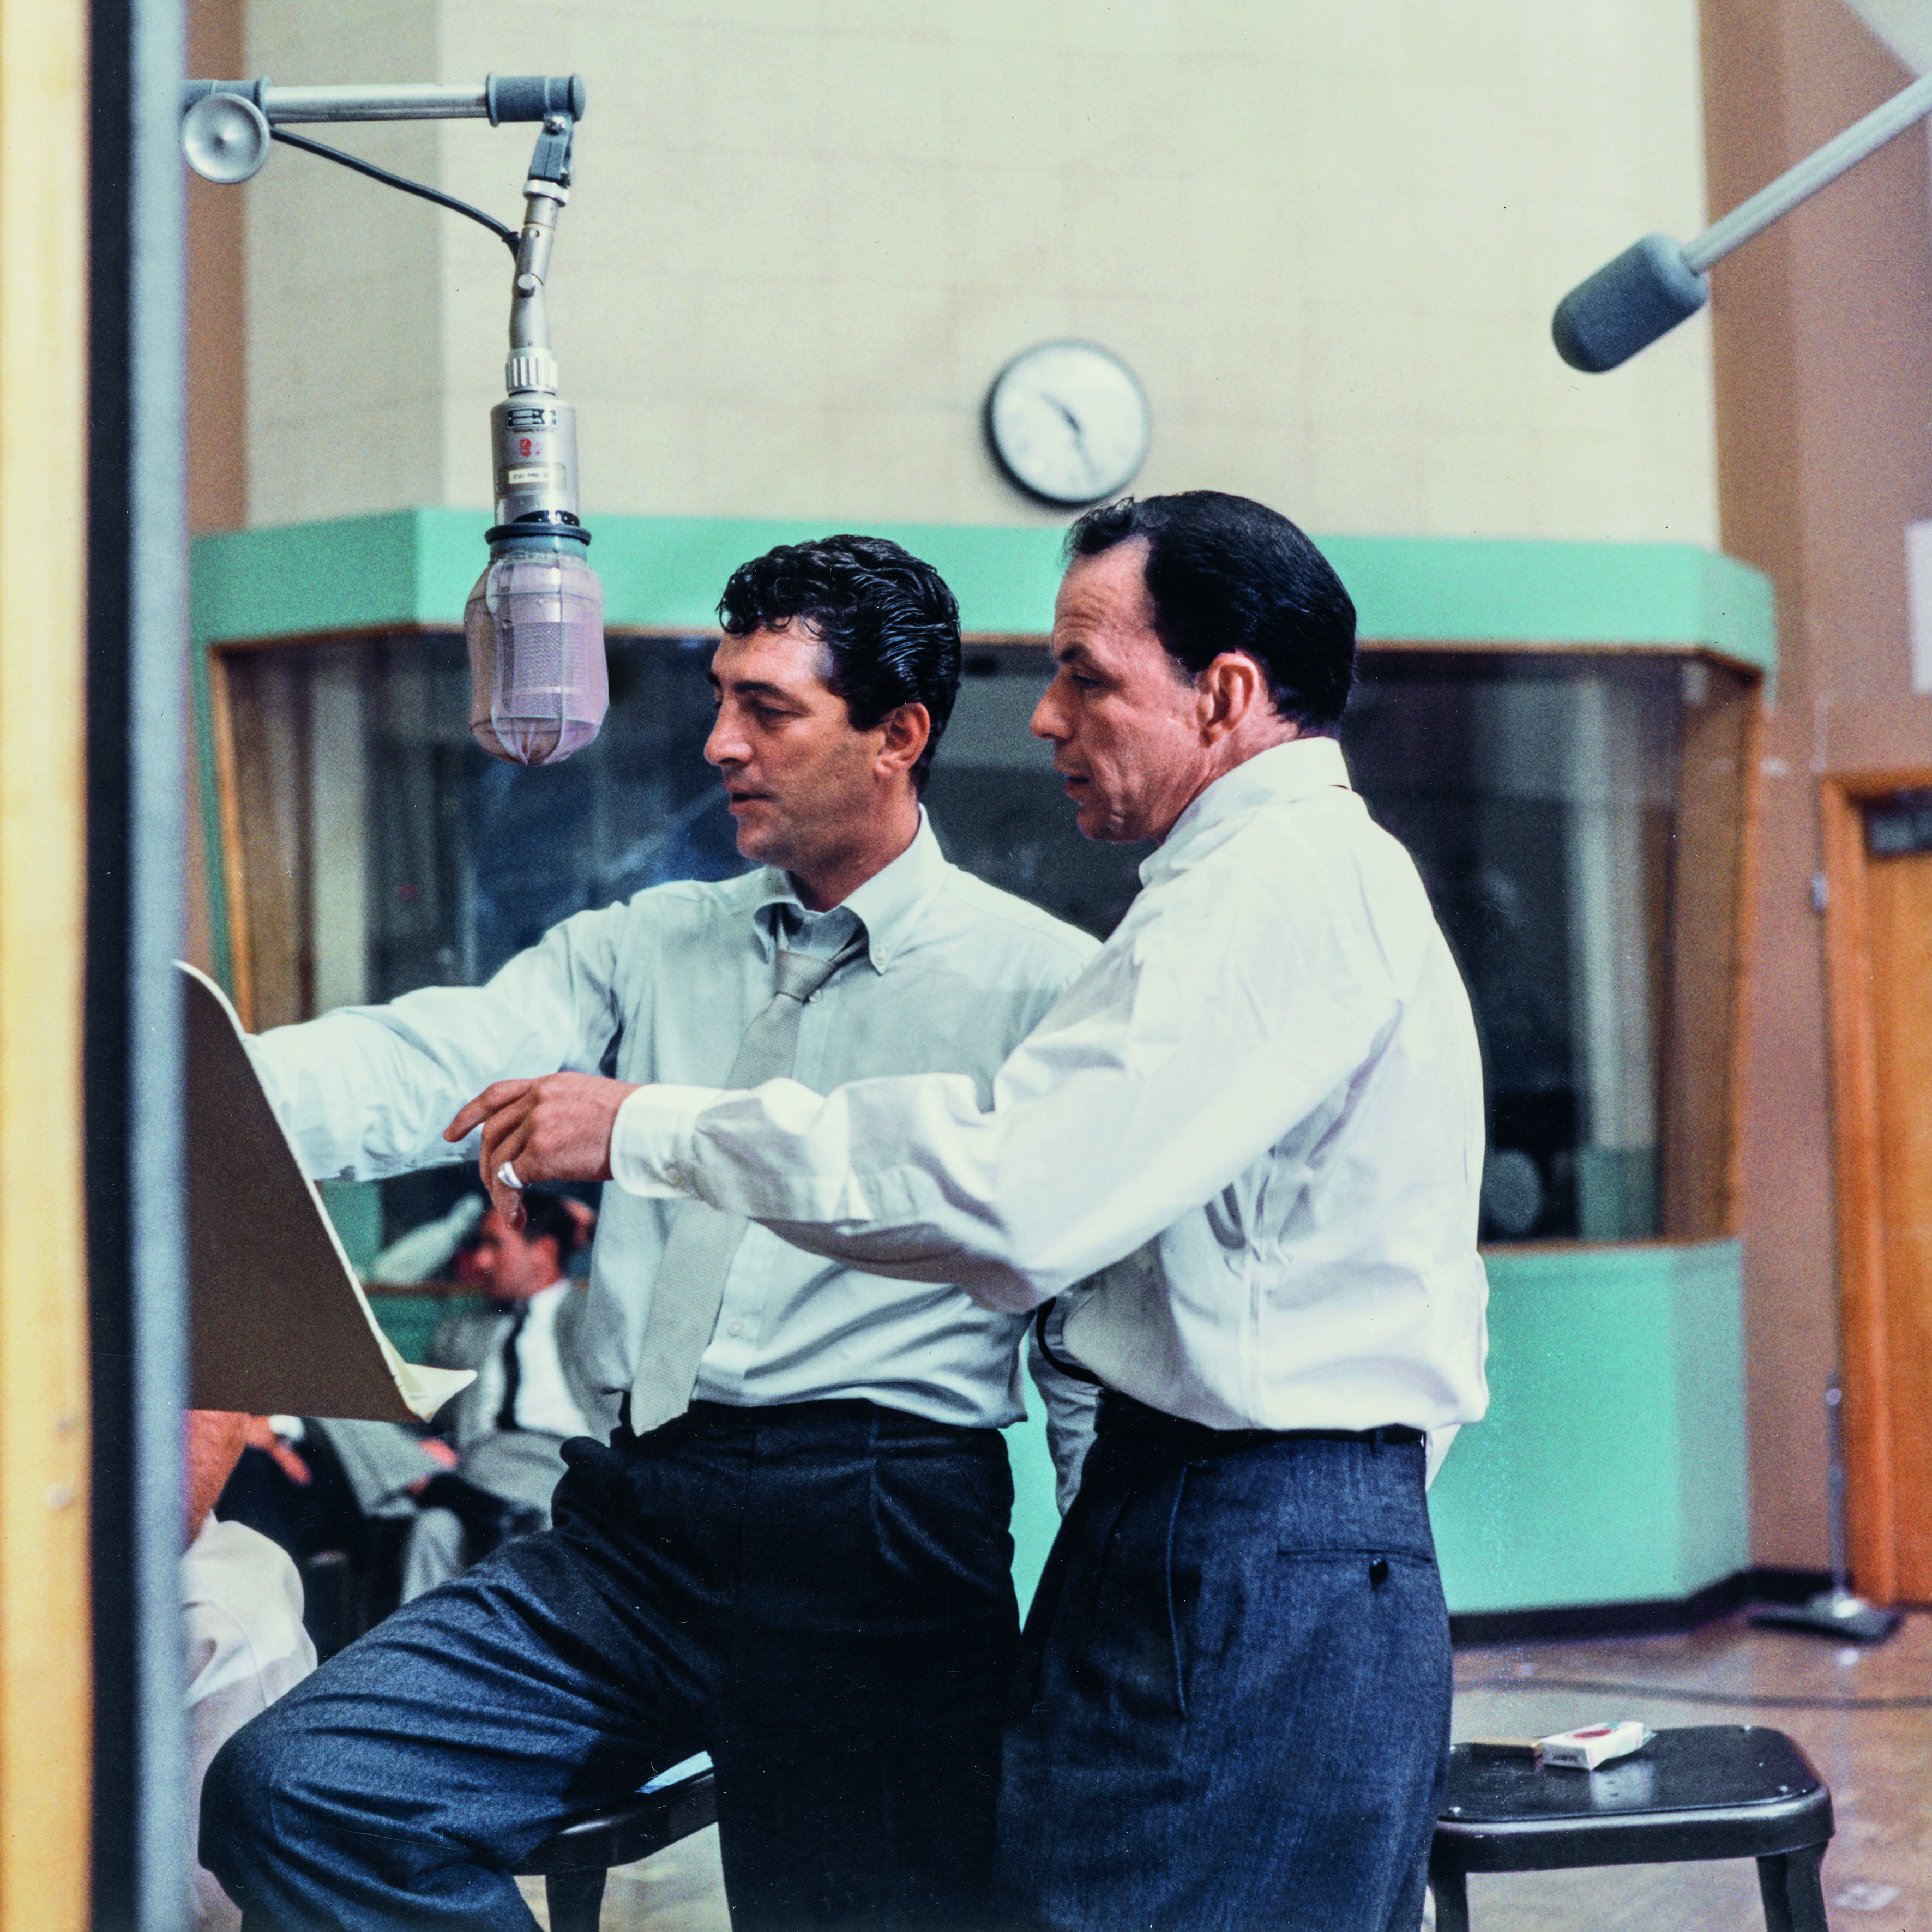 Frank Sinatra and Dean Martin at the sessions for Martin's Sleep Warm LP. Ken Veeder, Capitol Tower Studio B, October 1958. © Capitol Photo Archives.